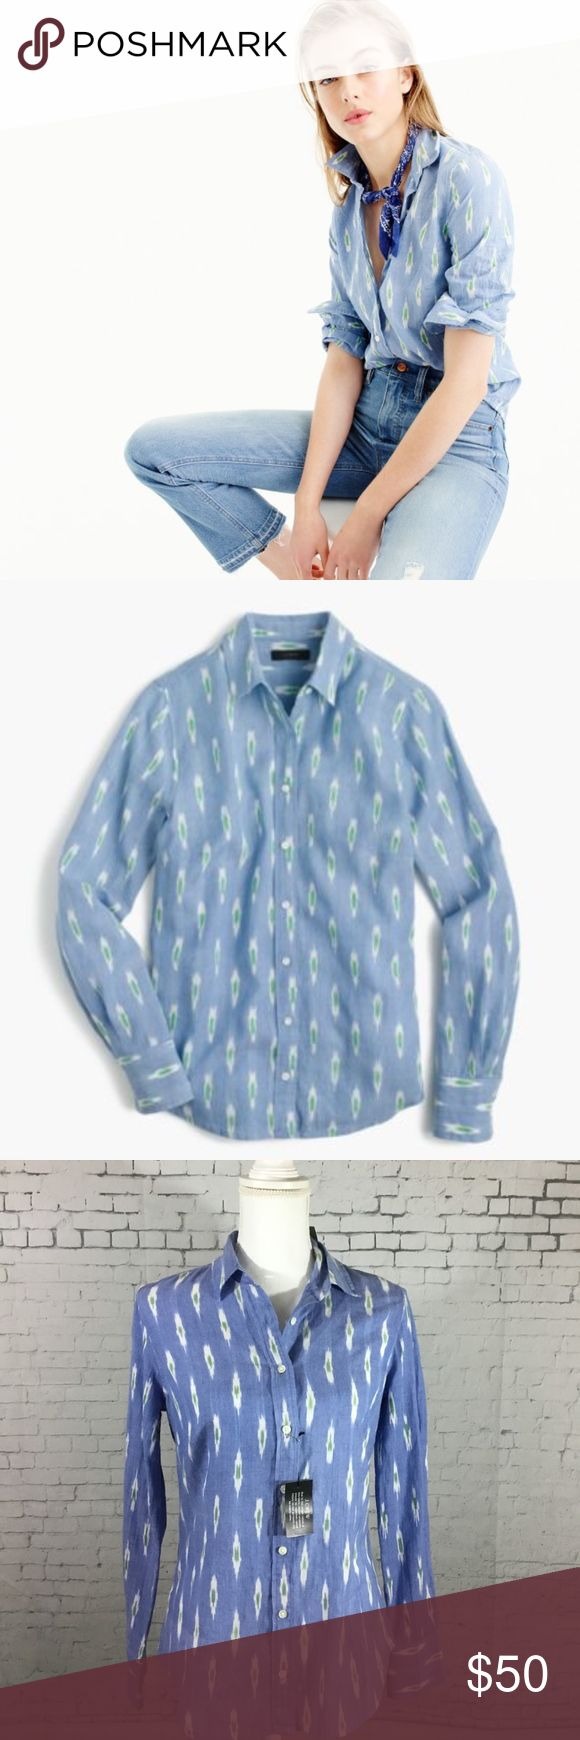 """Nwt J.Crew Ikat Perfect Shirt Size 4 Nwt J.Crew Size 4 Chest: 34"""" Armpit to armpit: 17"""" Length: 25"""" Our perfect shirt features precisely placed darts for a slimming, waist-defining fit that's more tailored and polished than our boy shirt. This one's in a pretty ikat perfect shirt. Cotton. Long roll-up sleeves. Functional buttons at cuffs. Button placket. Machine wash. J.Crew Tops Button Down Shirts"""